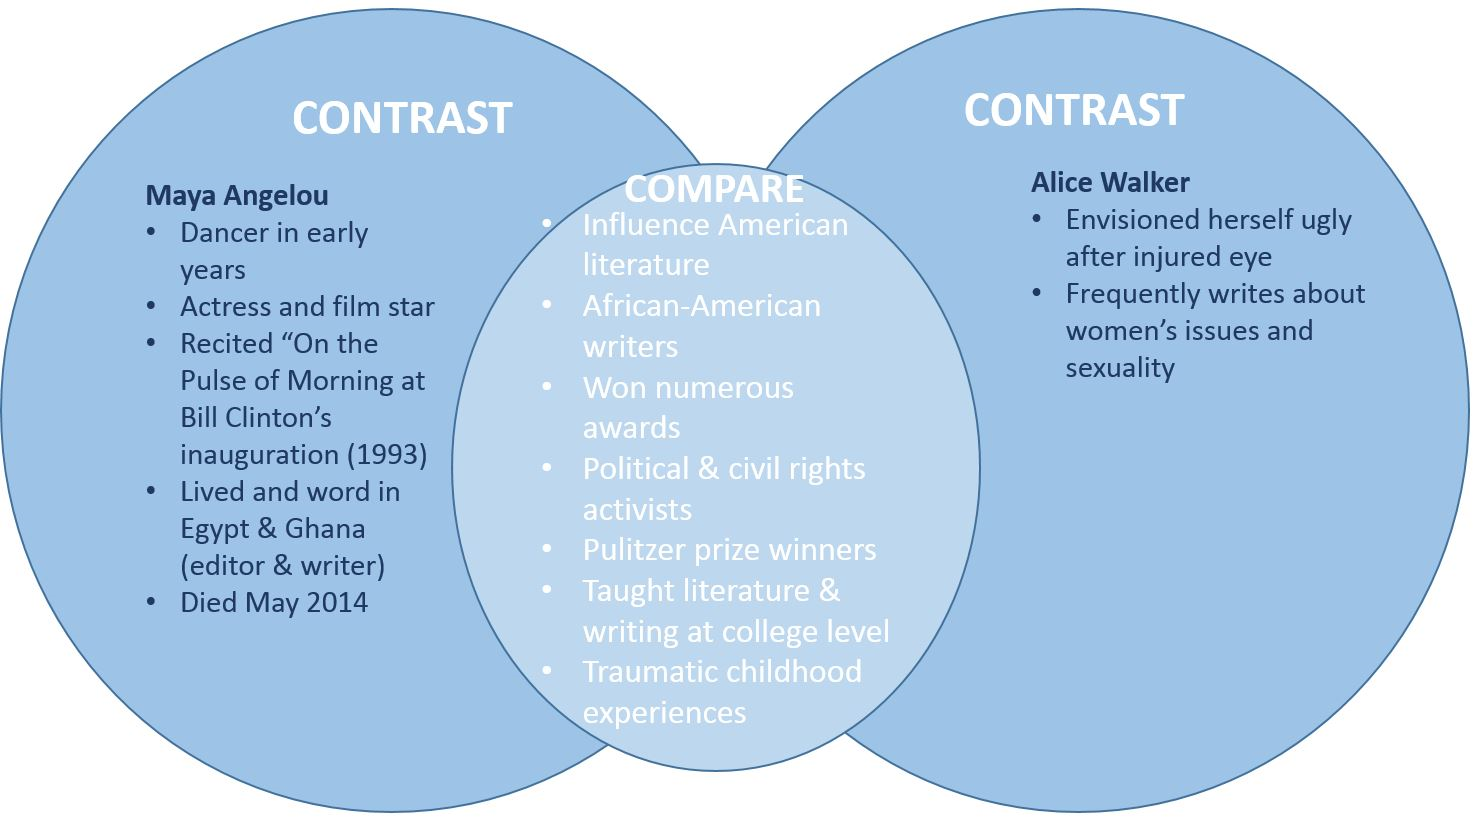 thesis compare contrast paper This handout will help you determine if an assignment is asking for comparing and contrasting the thesis of your comparison/contrast paper is very important.